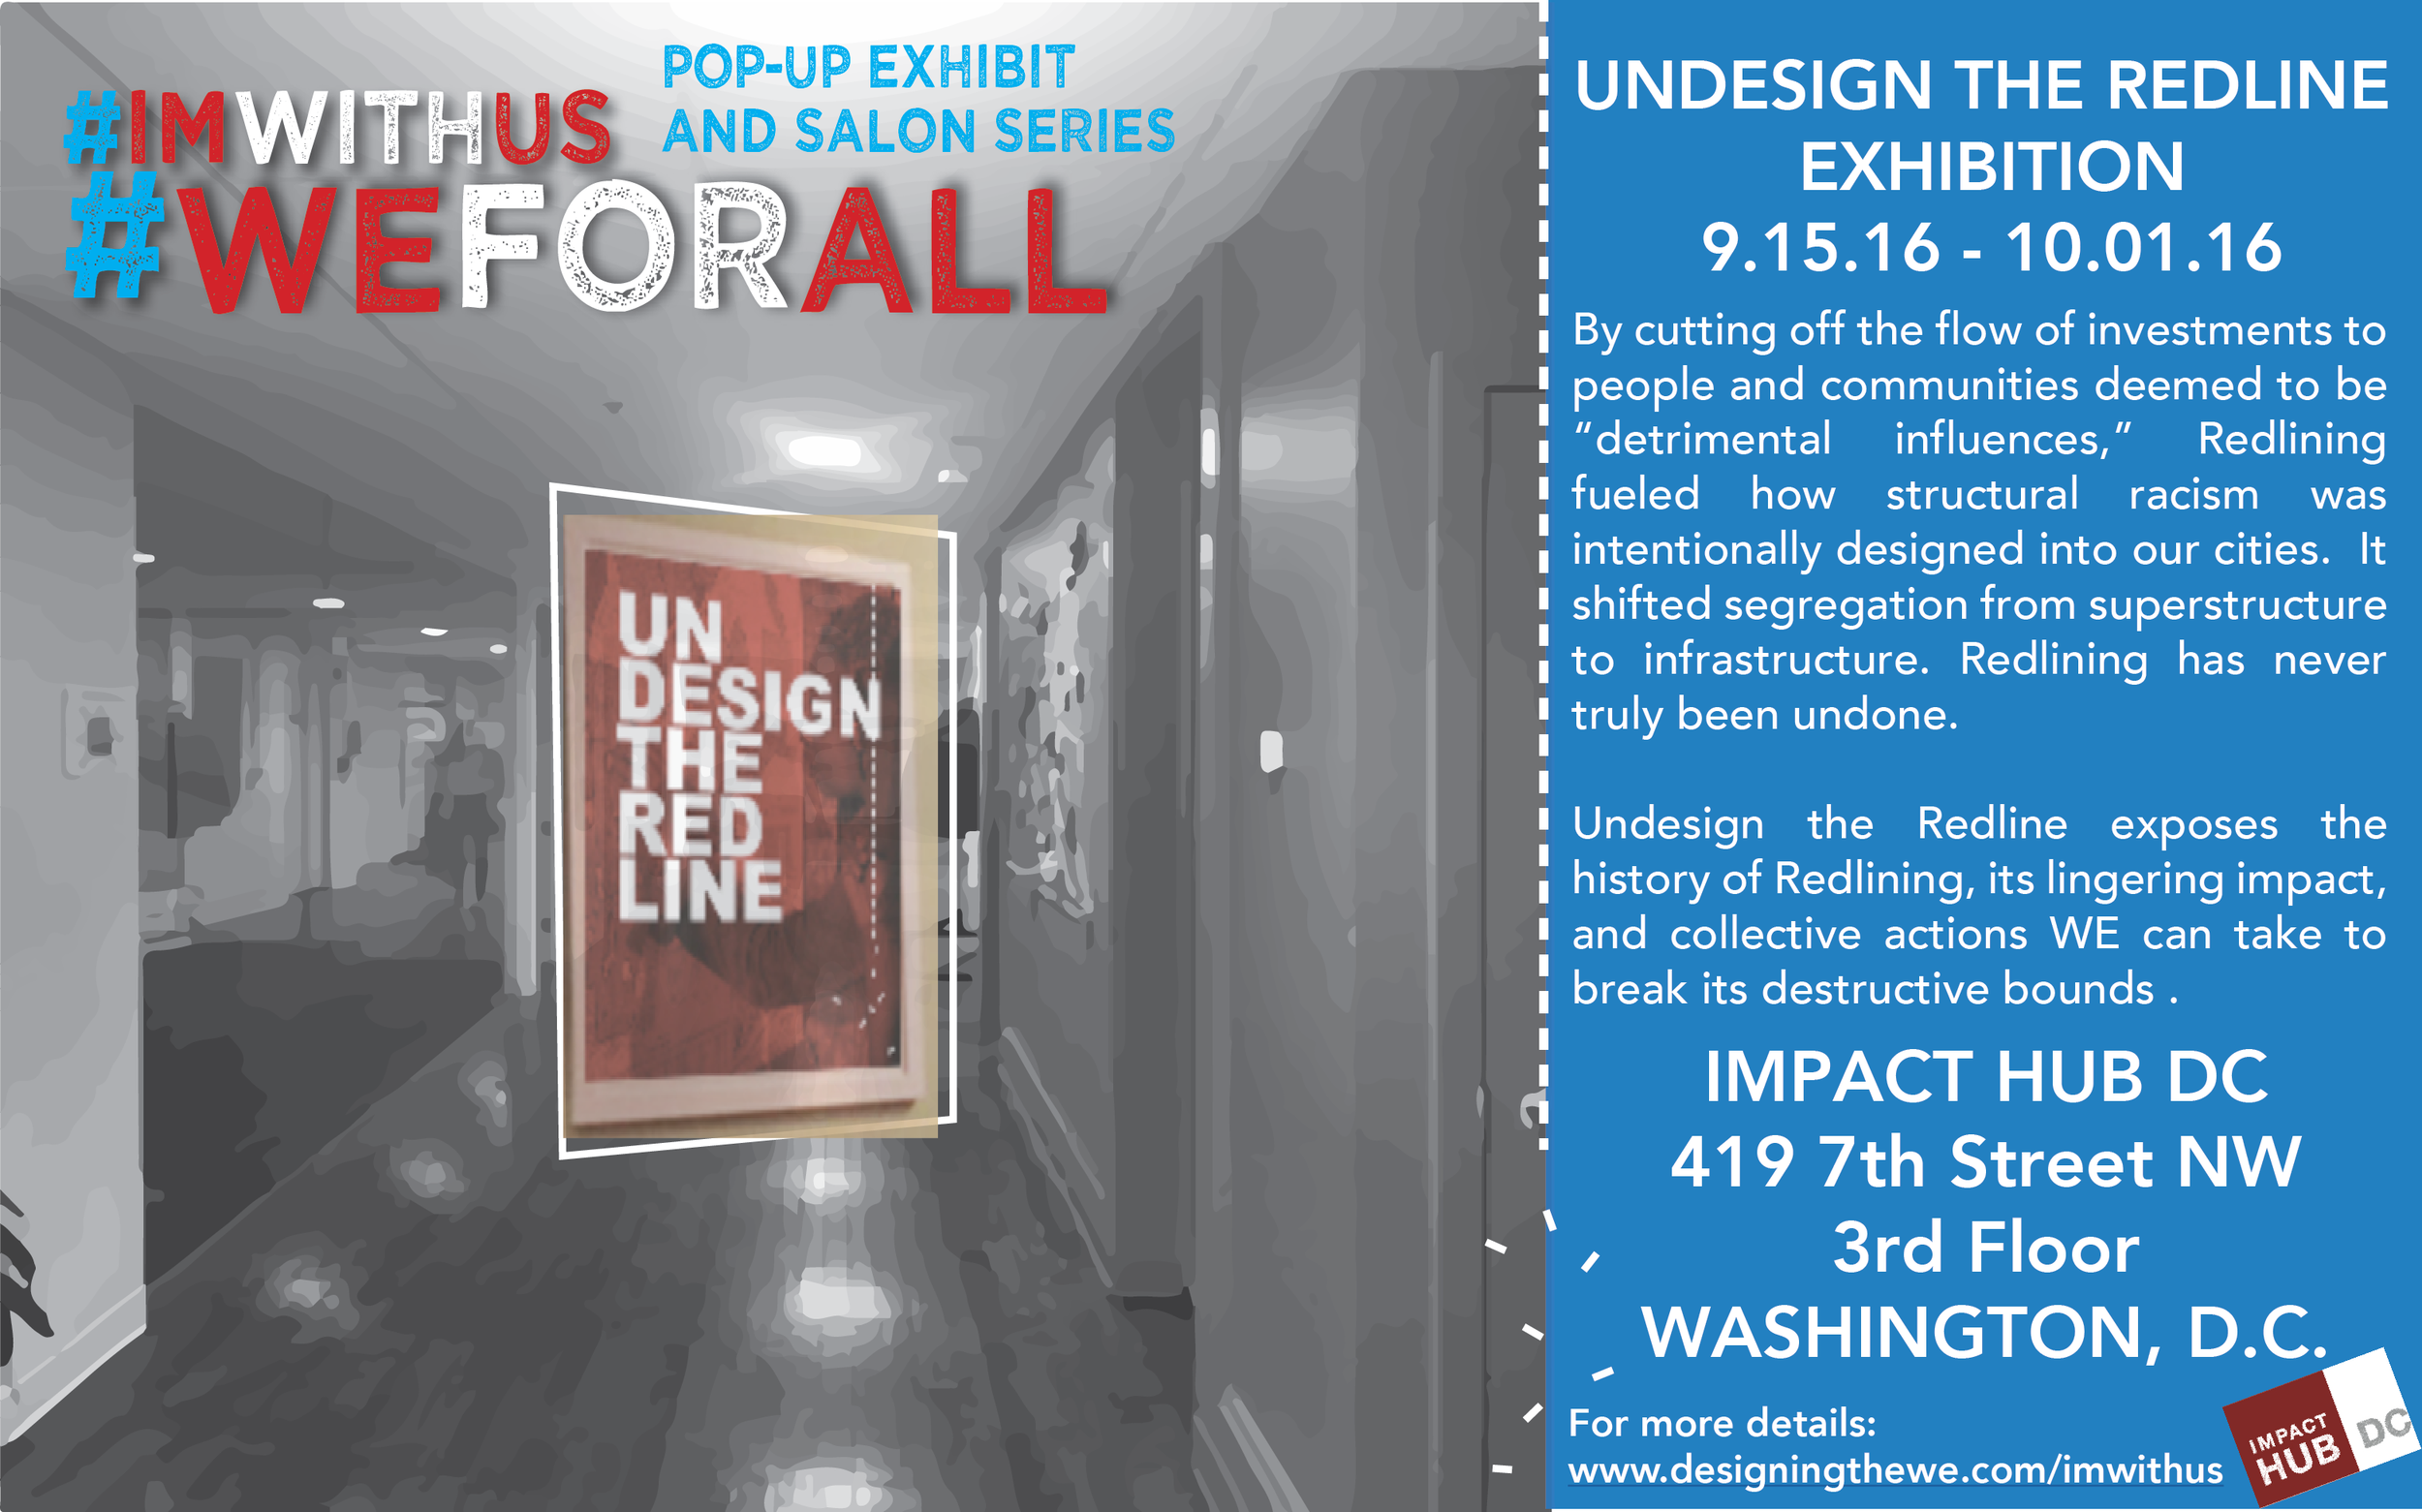 COME TOUR THE FULL INSTALLATION OF THE UNDESIGN THE REDLINE INTERACTIVE EXHIBIT AT IMPACT HUB DC!  DAILY FROM 10 A.M.-5 P.M. PLEASE CONTACT US FOR LARGE GROUPS (4 OR MORE) OR PRIVATE TOURS.